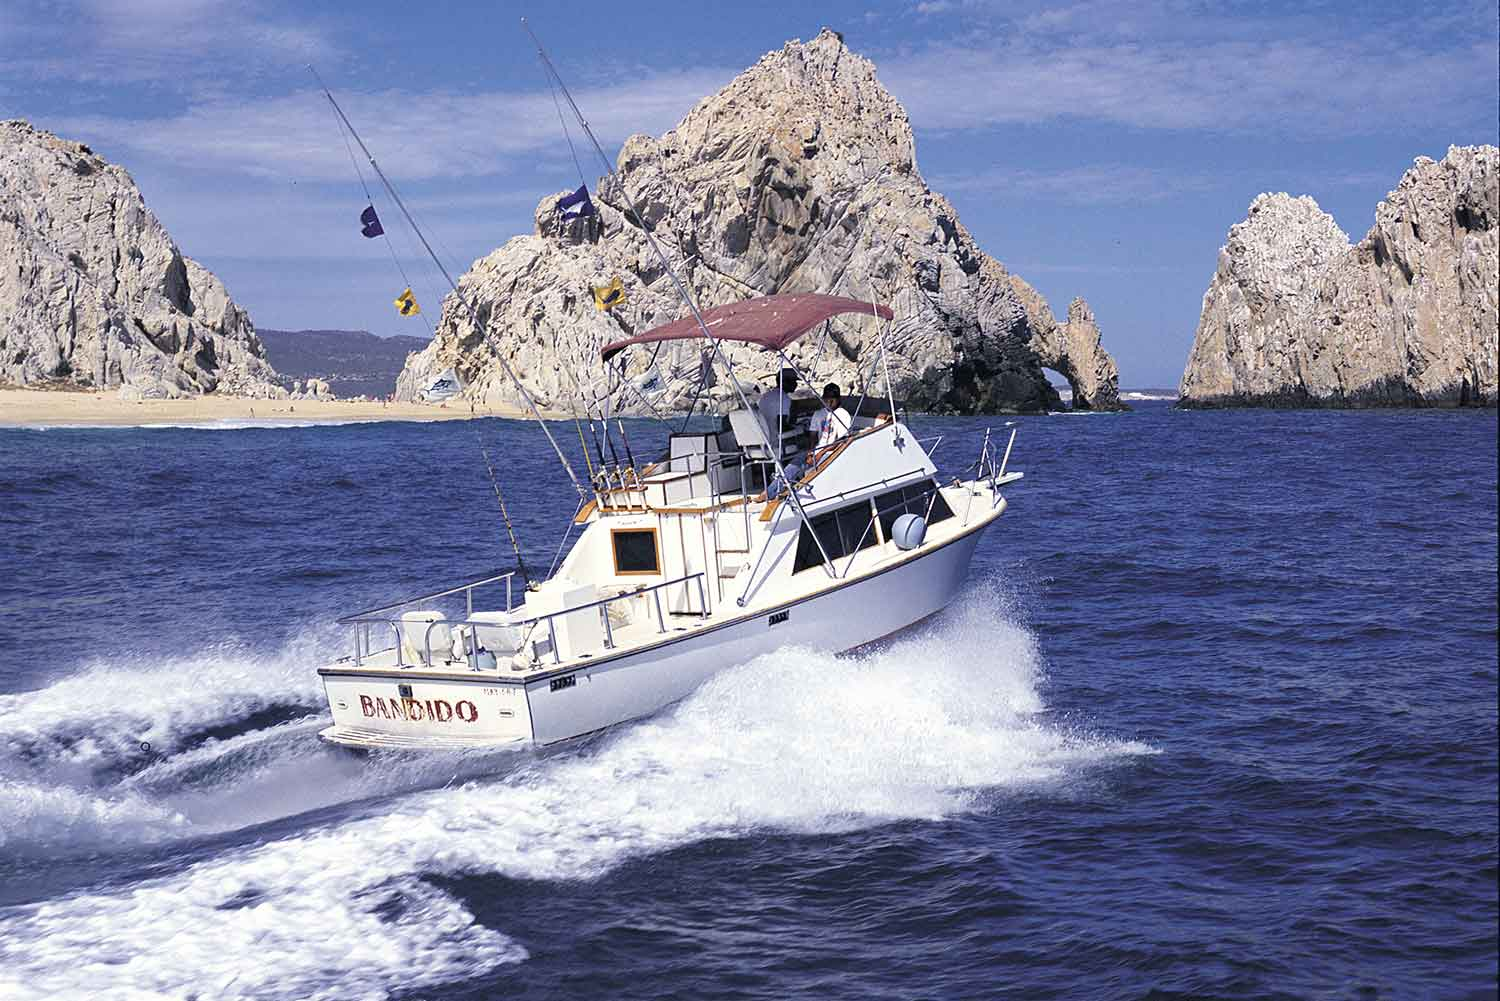 fishing-boat-cabo-bandido-315-020047-2